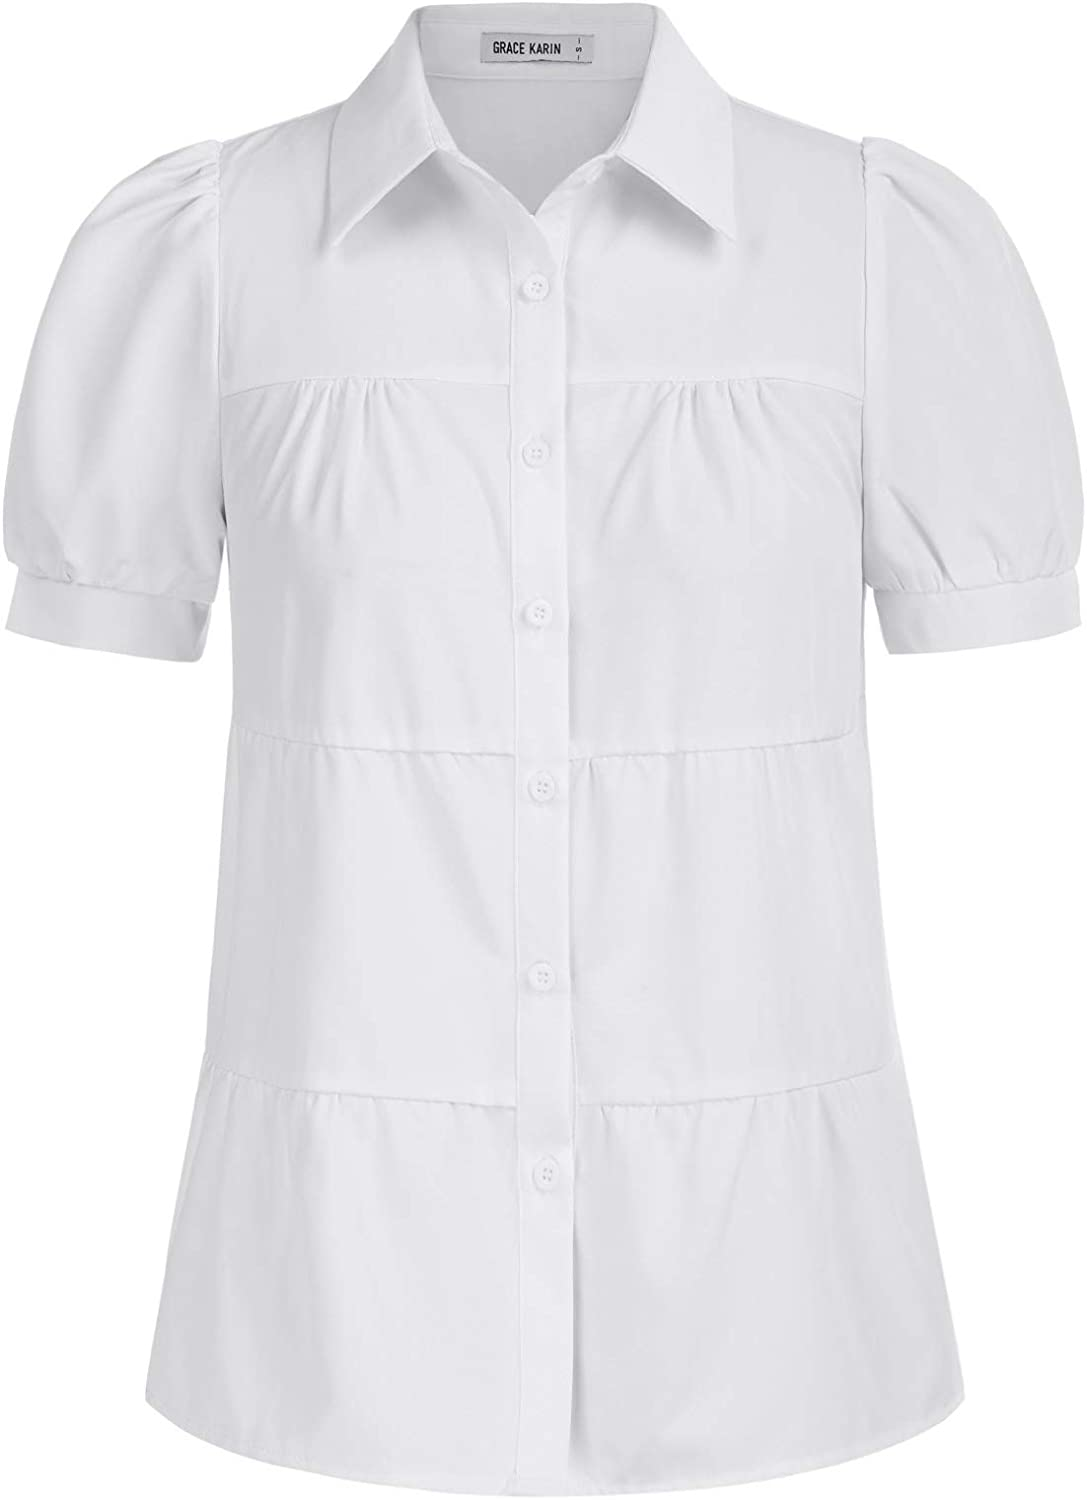 Women's Button-Down Shirts Puff Short Sleeve V Neck Tiered Summer Casual Blouse Tops